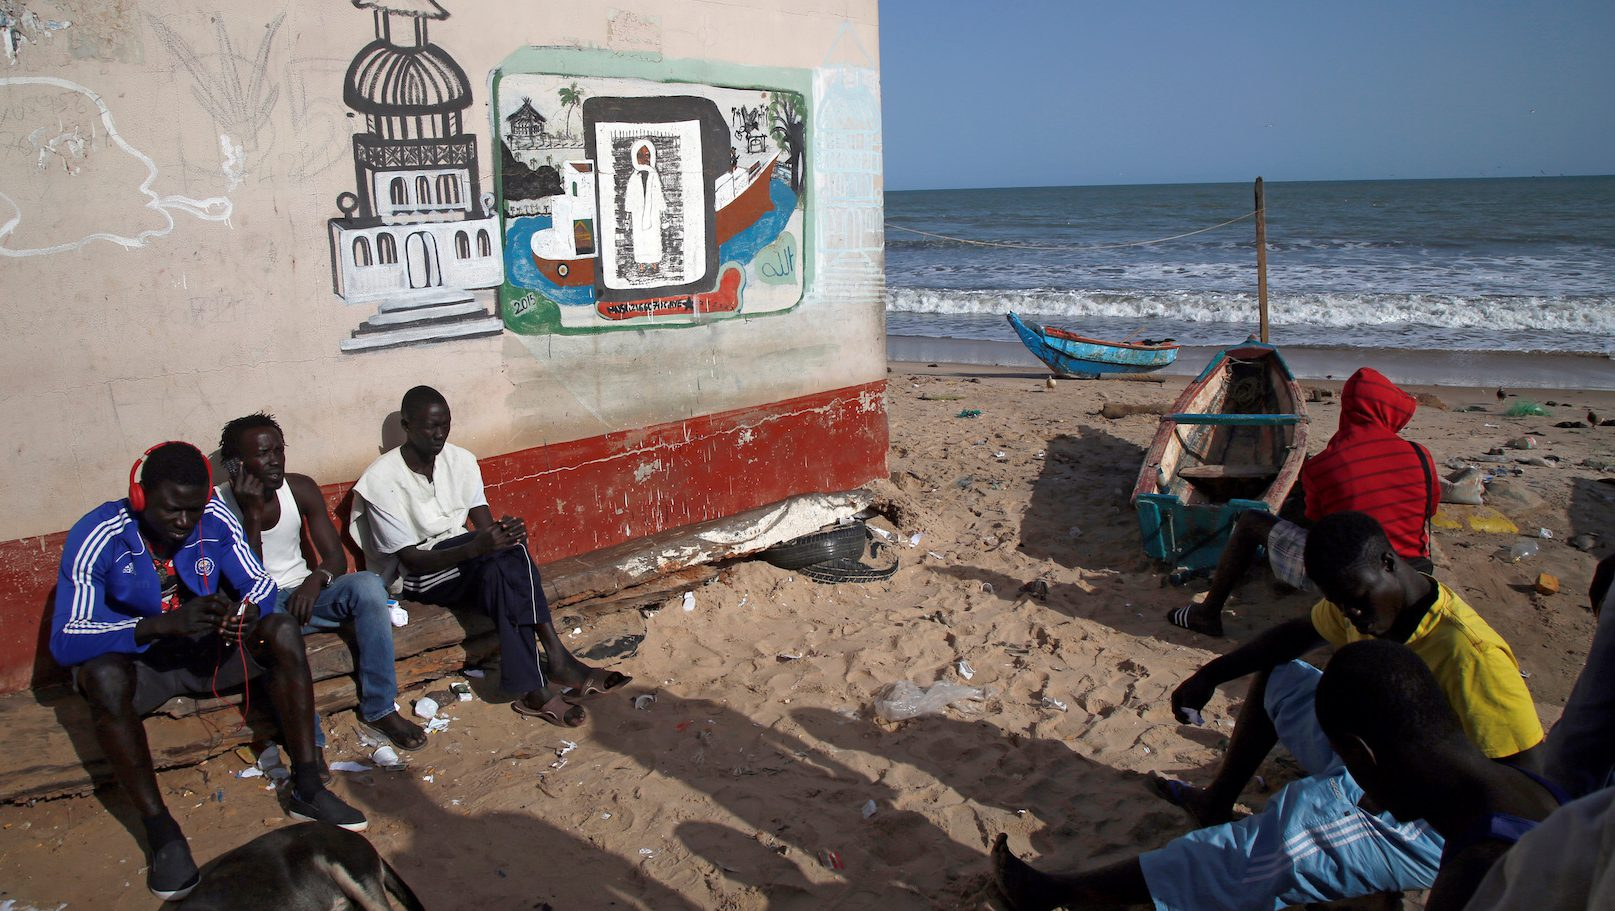 Fishermen are seen as they sit next to the seashore in Banjul, Gambia April 7, 2017.